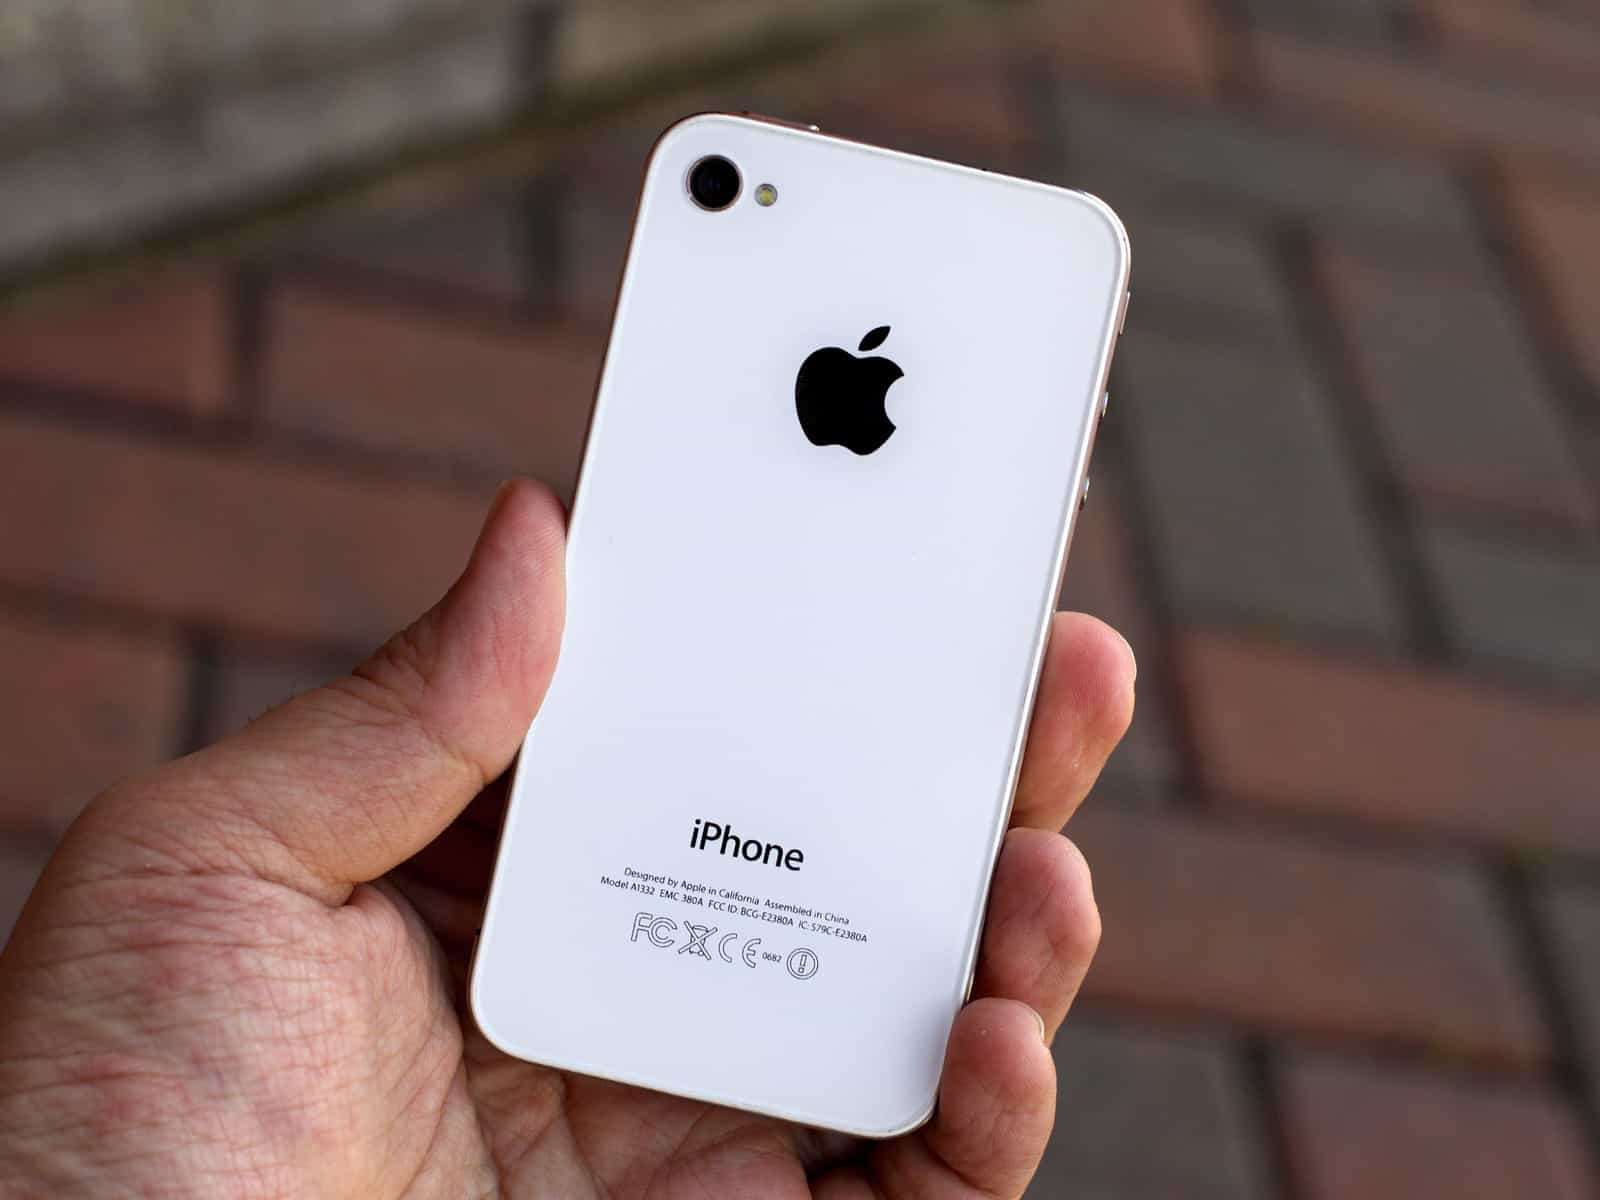 2020 iPhones will feature iPhone 4 like design, reports Kuo